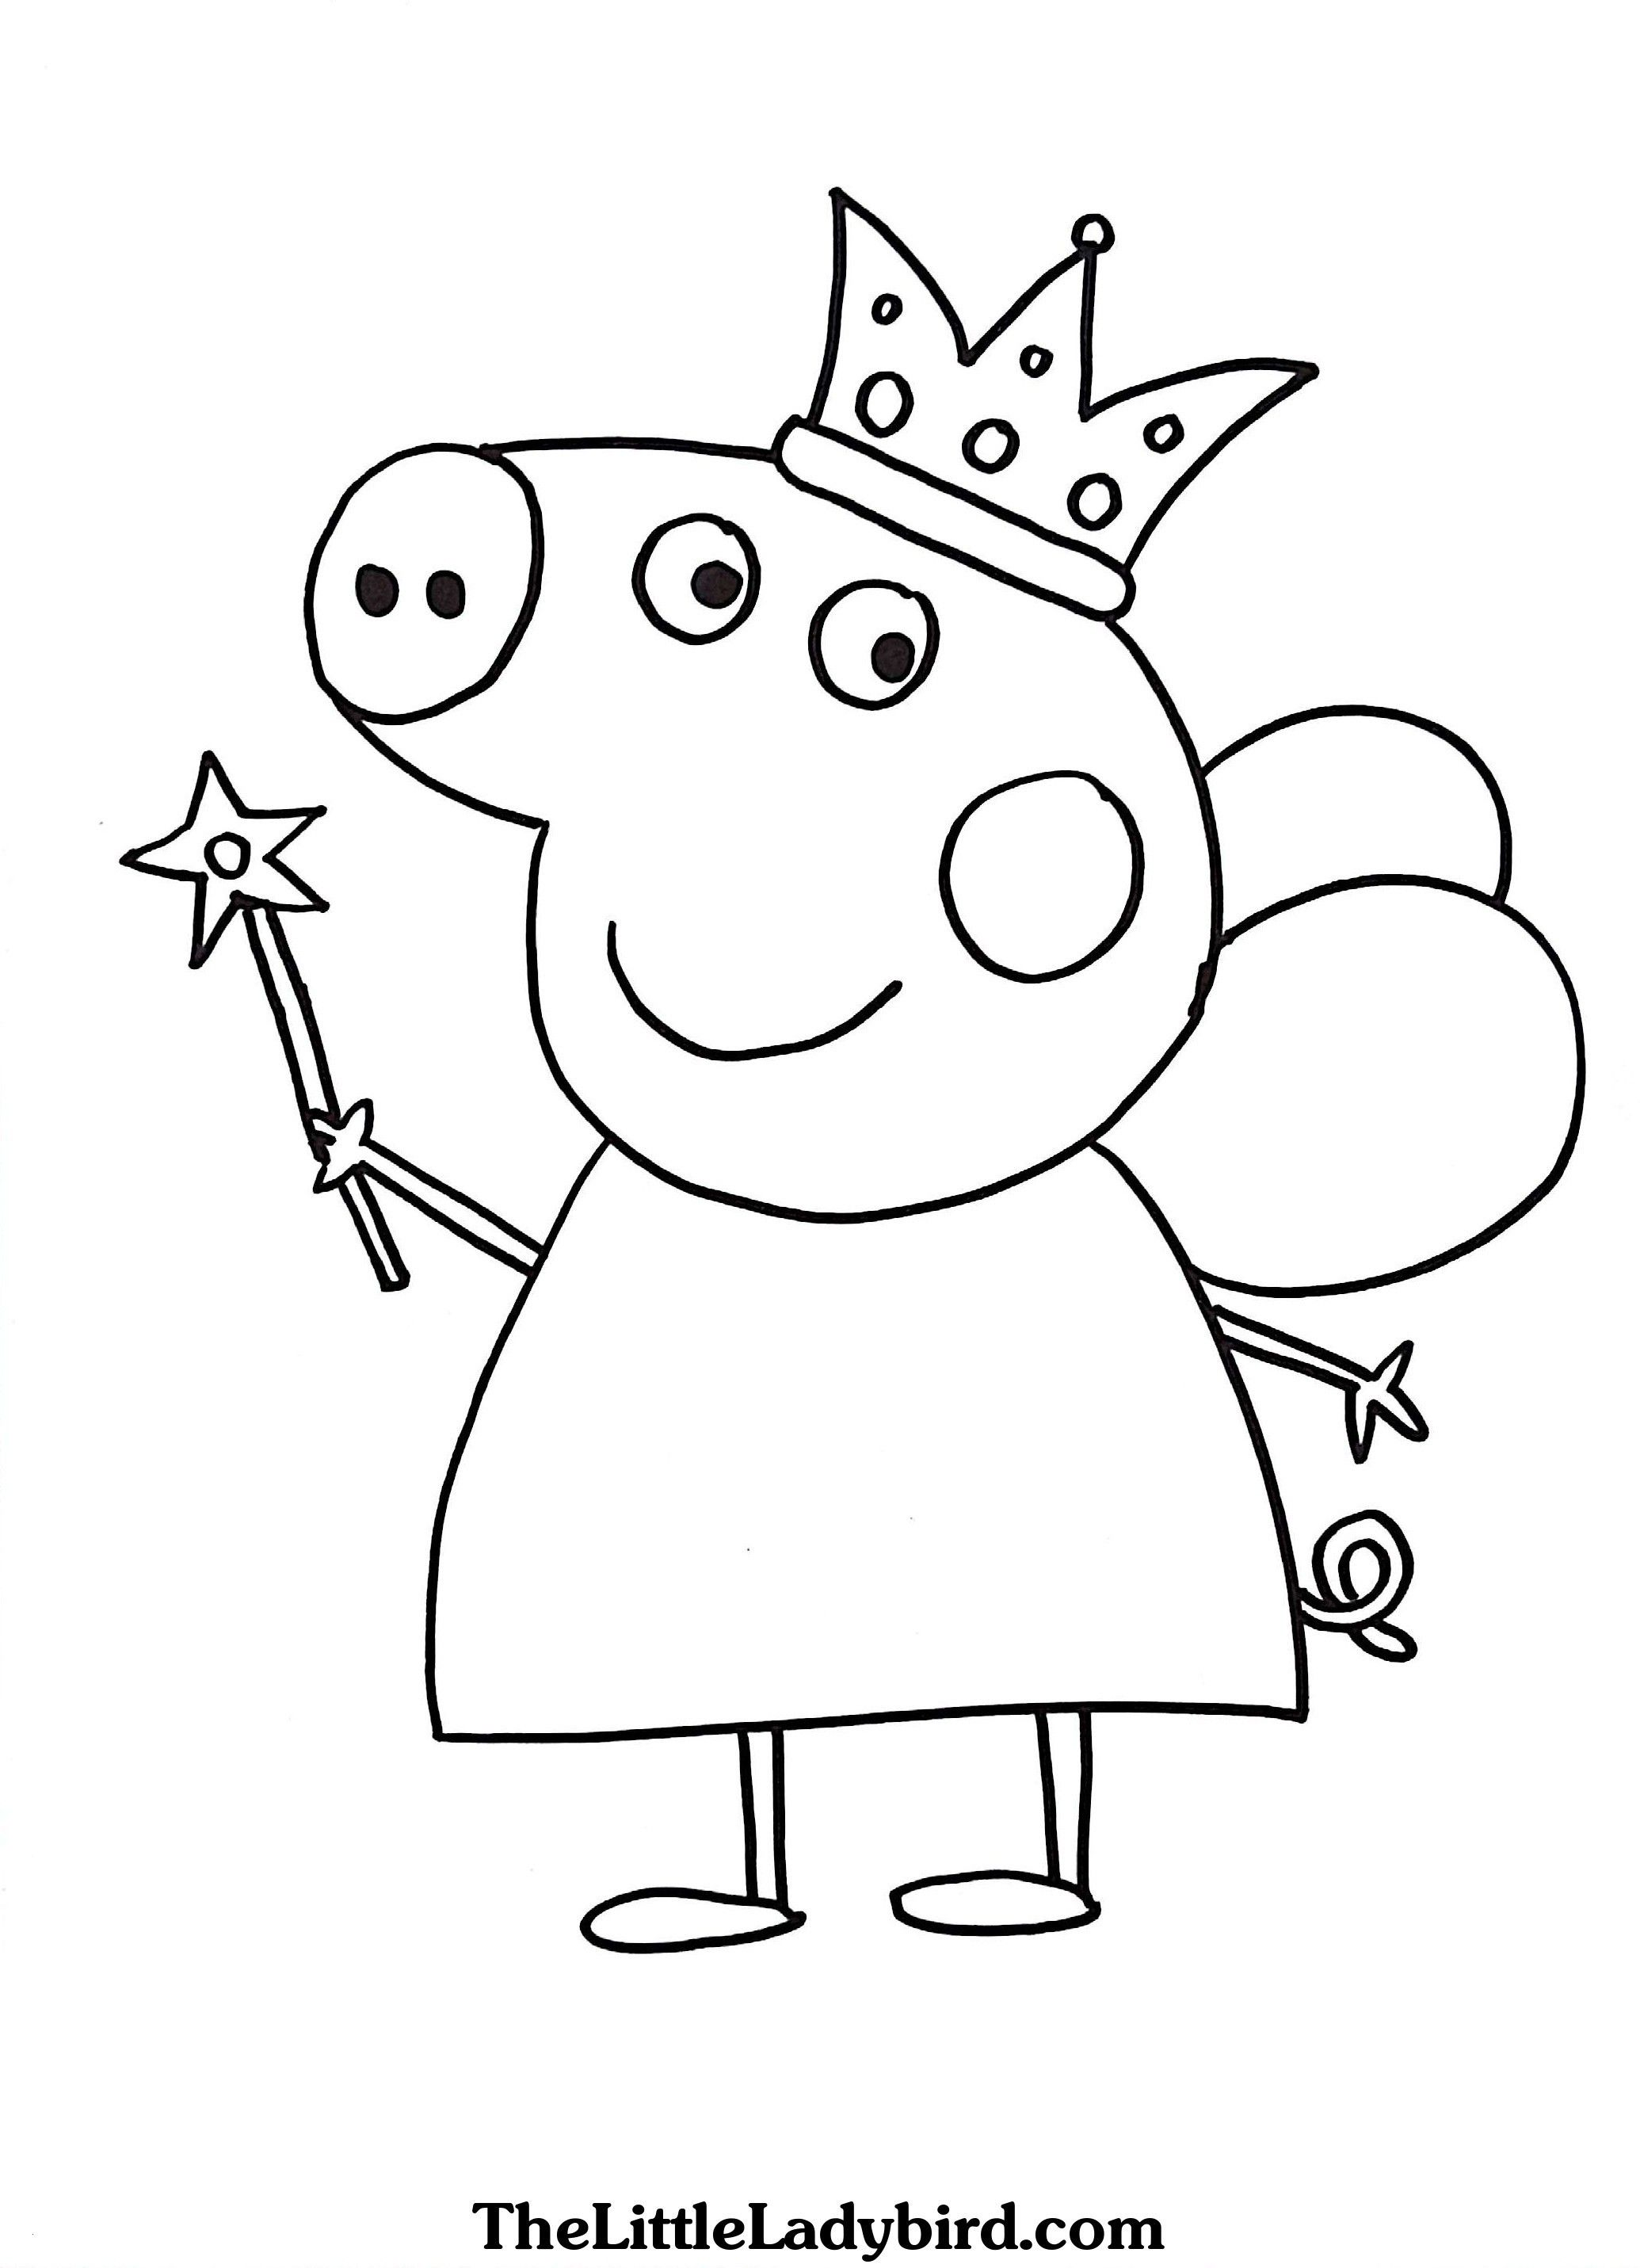 Peppa Pig Valentines Coloring Pages From The Thousand Images Online Concerning Peppa Pig Peppa Pig Coloring Pages Peppa Pig Colouring Birthday Coloring Pages